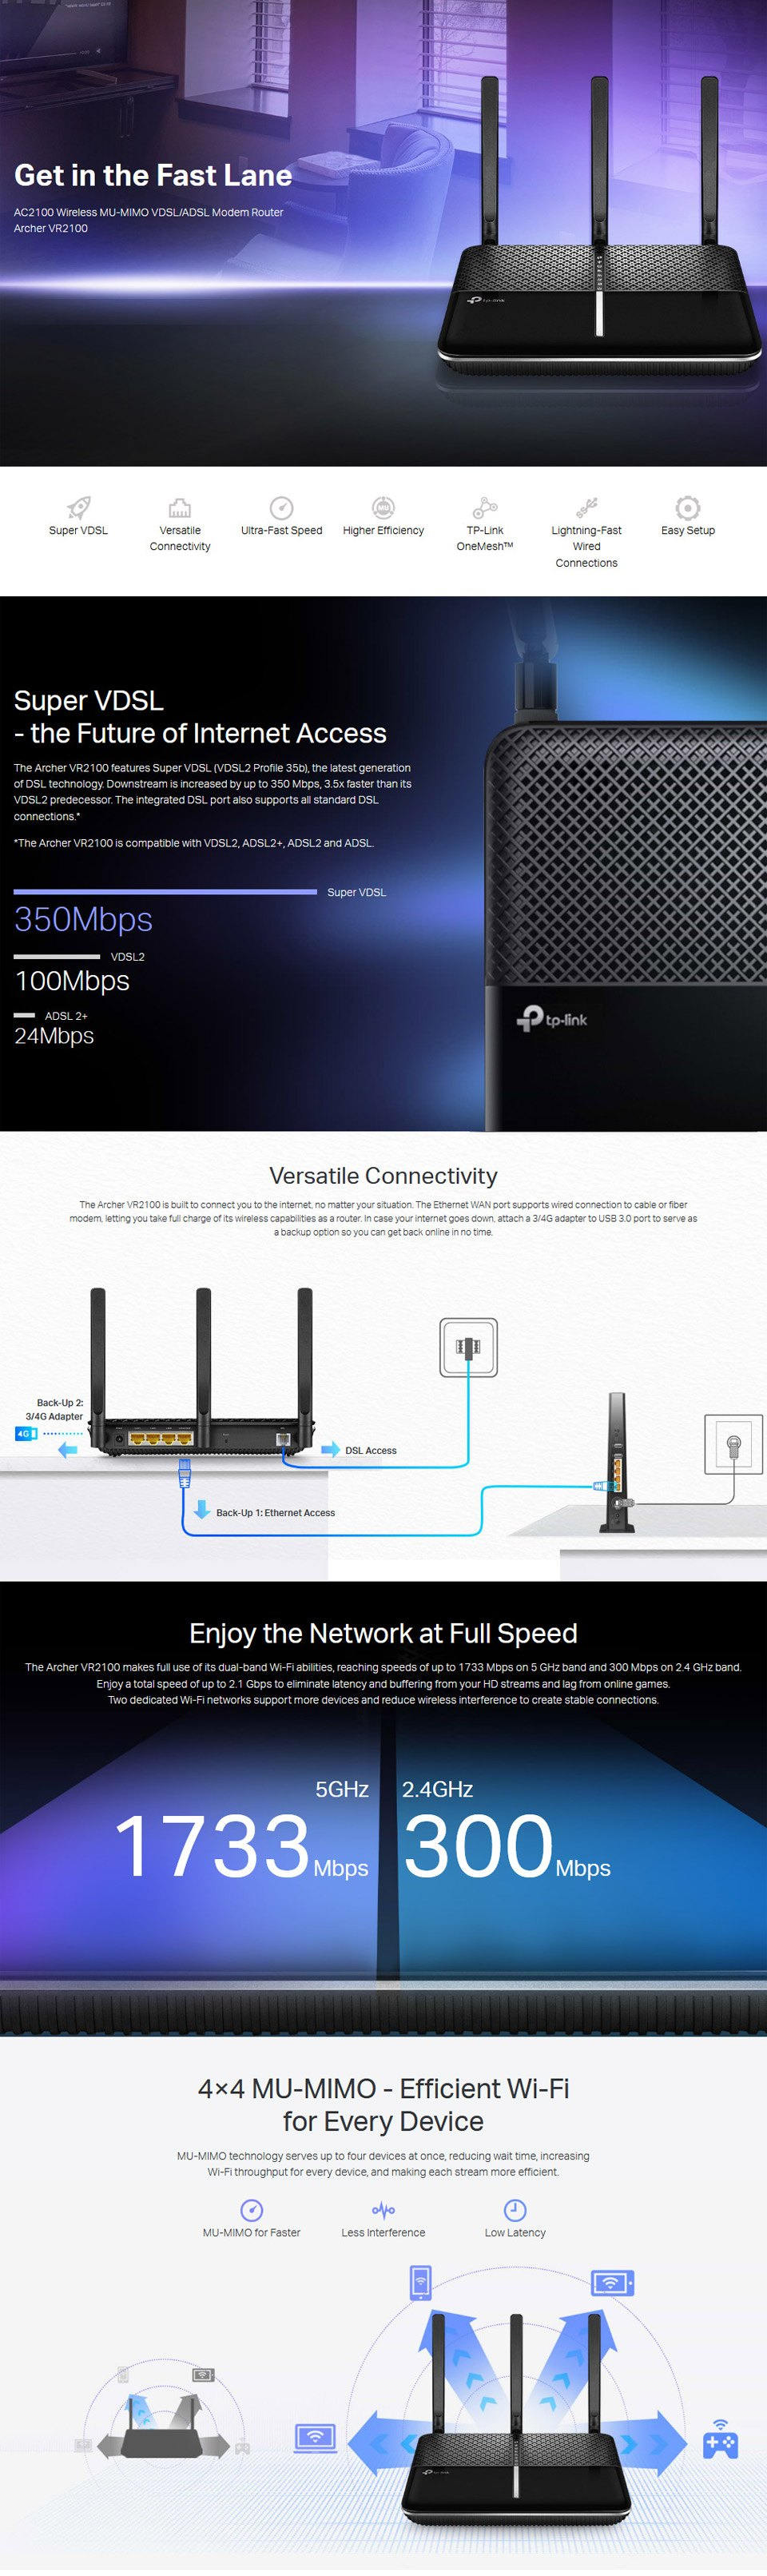 TP-Link Archer VR2100 Wireless MU-MIMO VDSL/ADSL Modem Router features